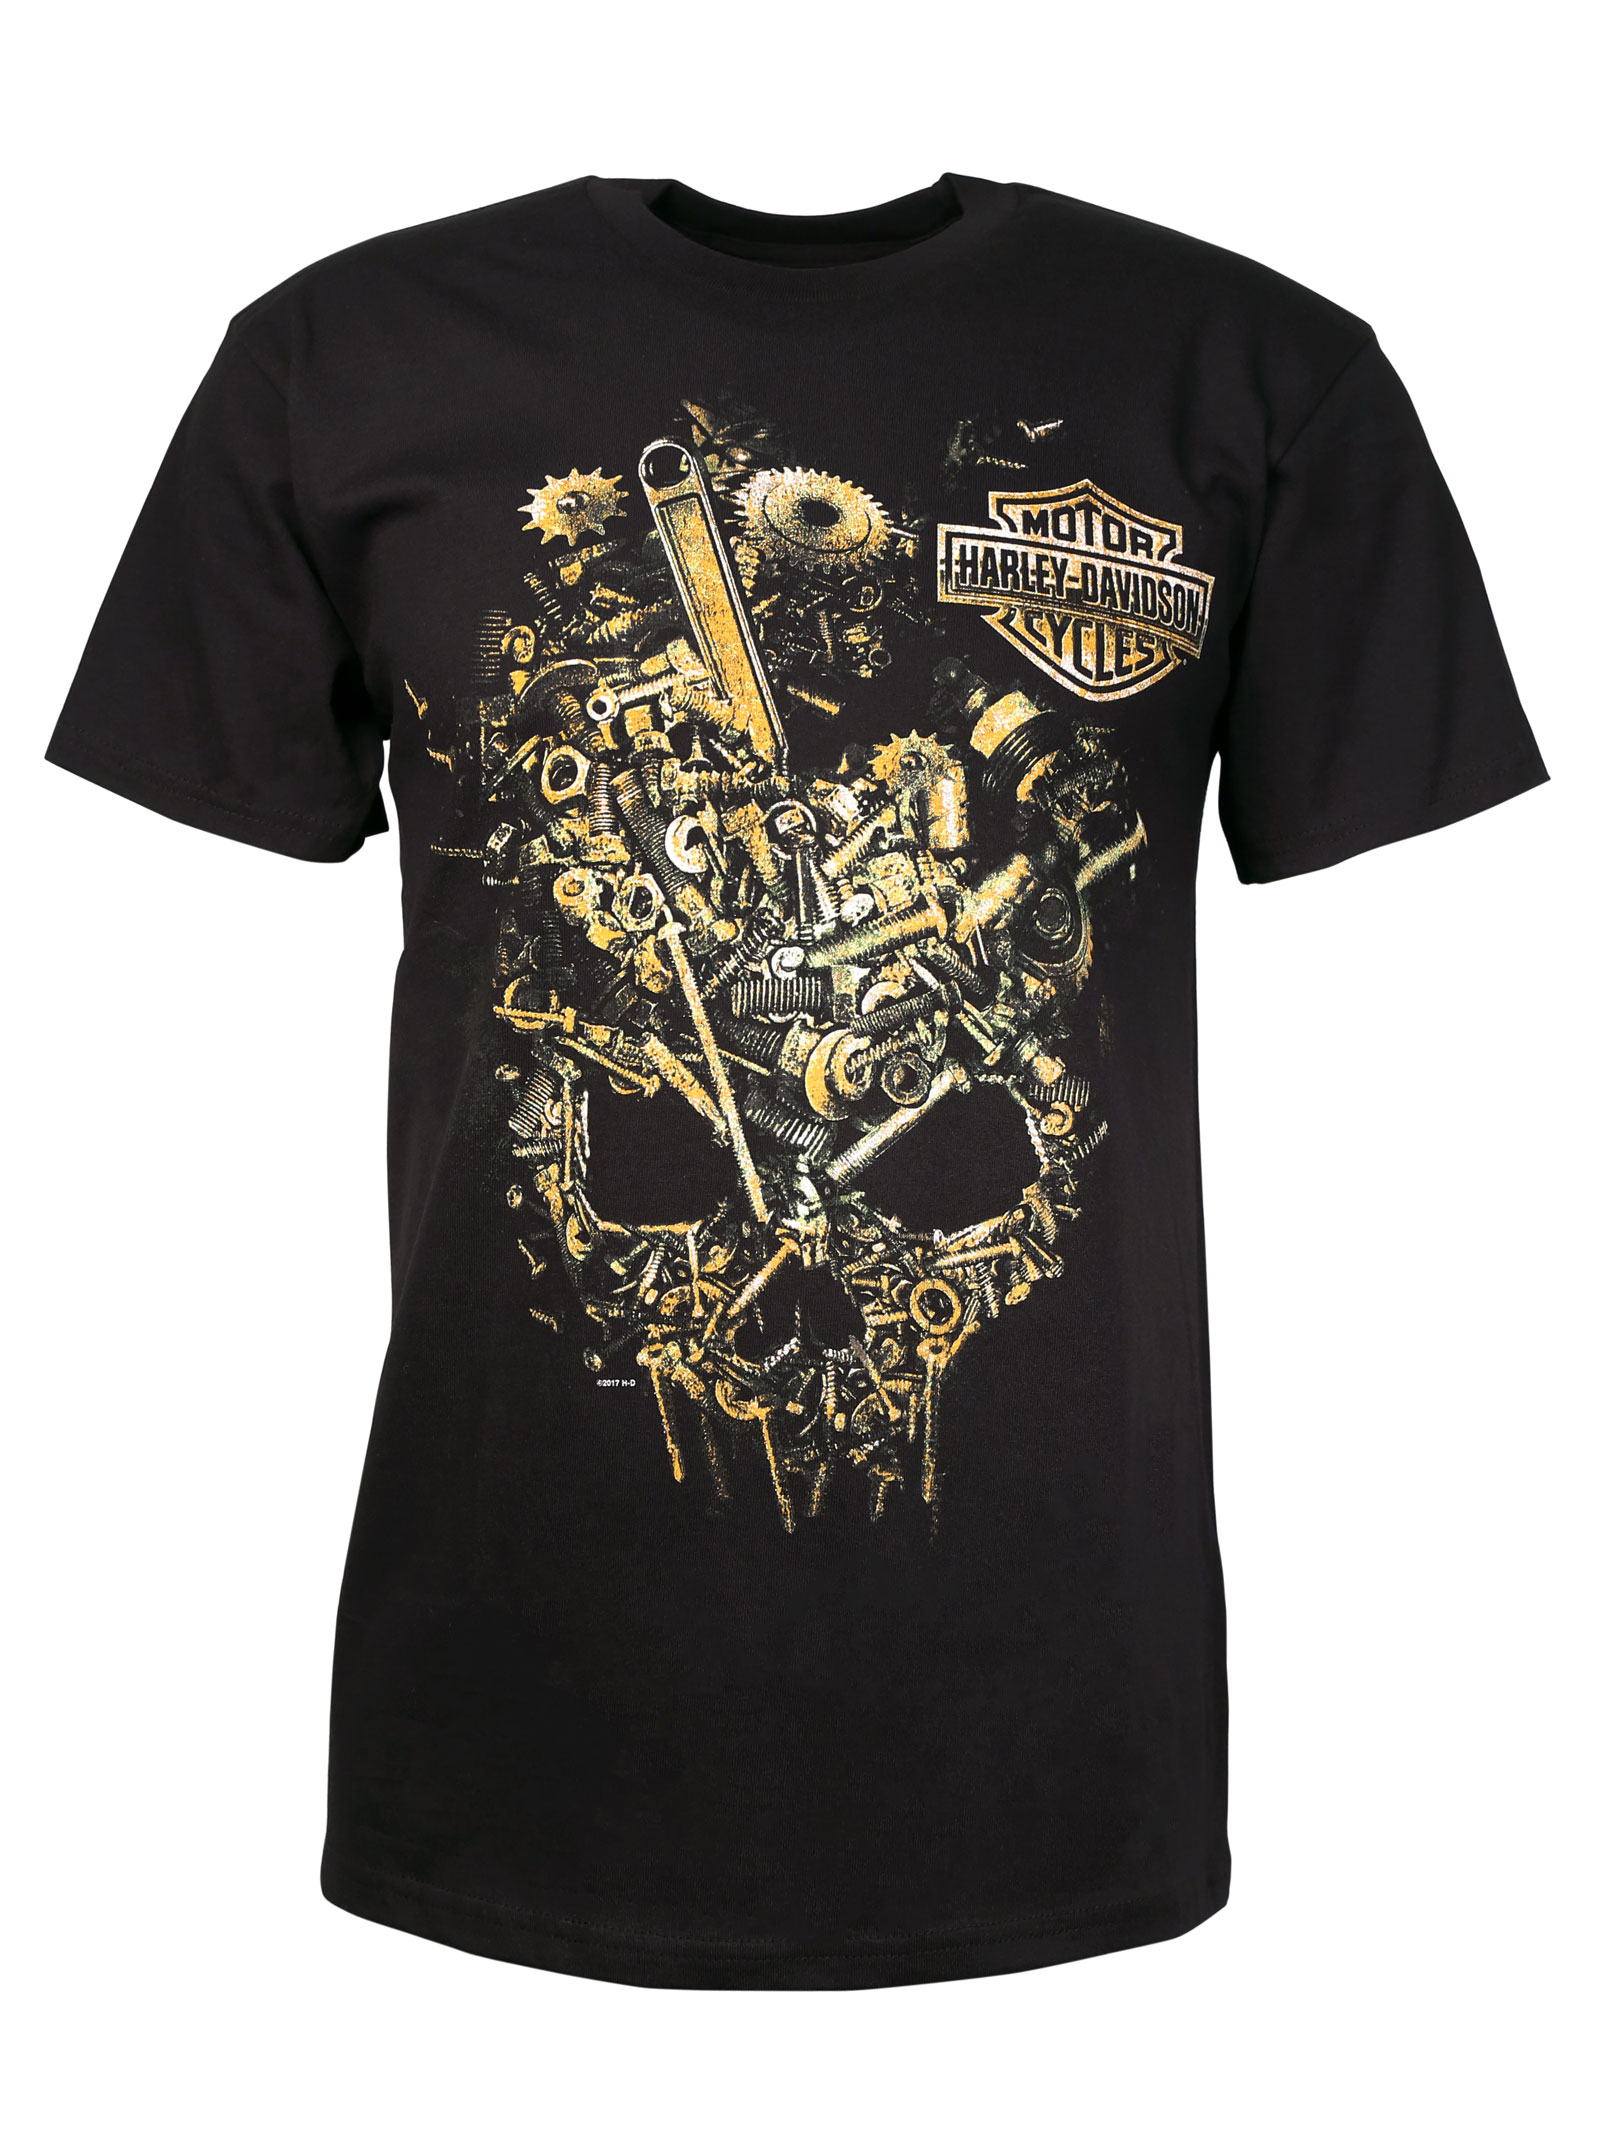 harley davidson t shirt following delirium at thunderbike shop. Black Bedroom Furniture Sets. Home Design Ideas